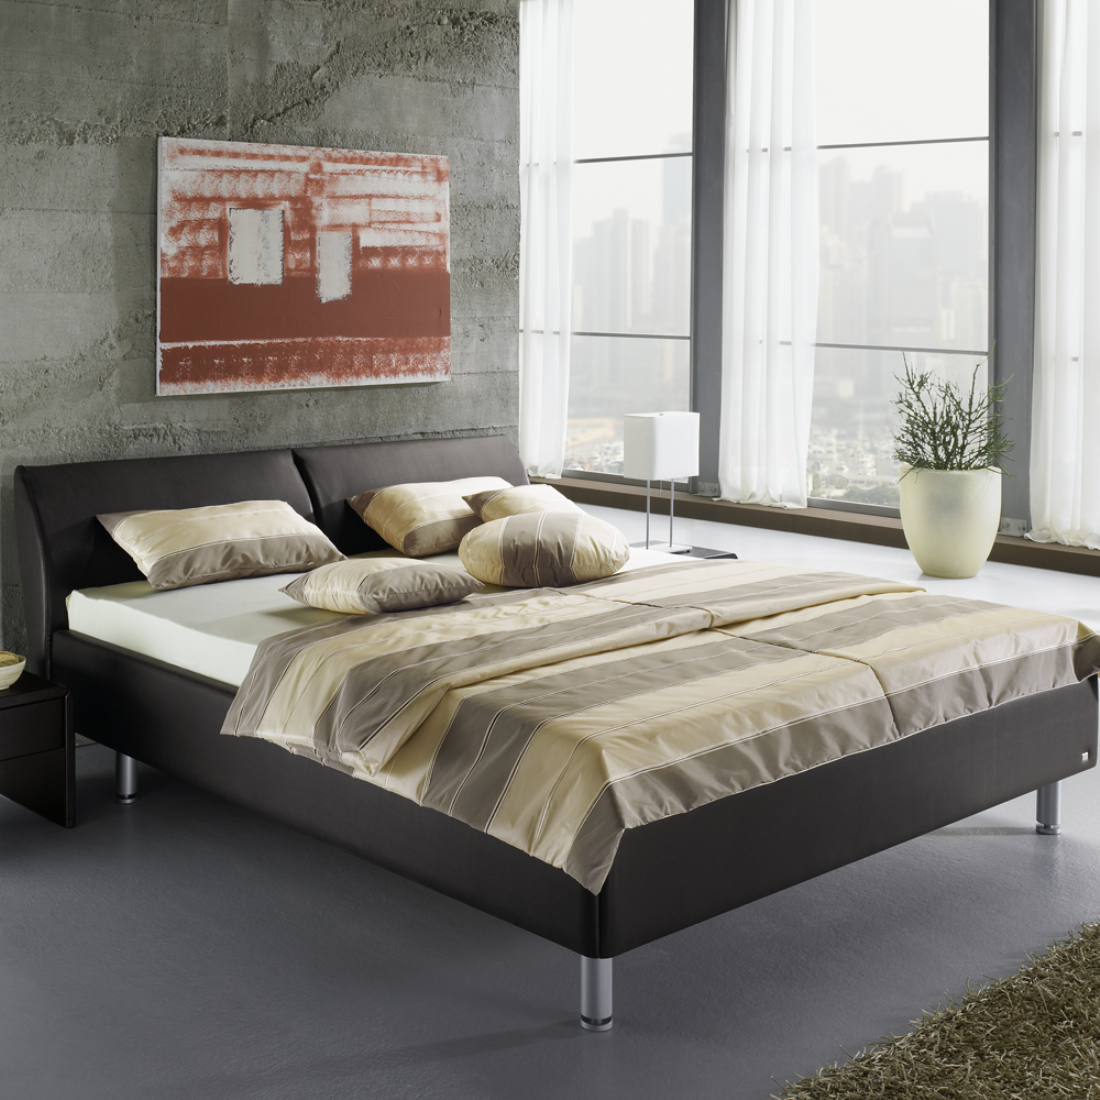 ein bett selber bauen bilder ideen couchstyle. Black Bedroom Furniture Sets. Home Design Ideas